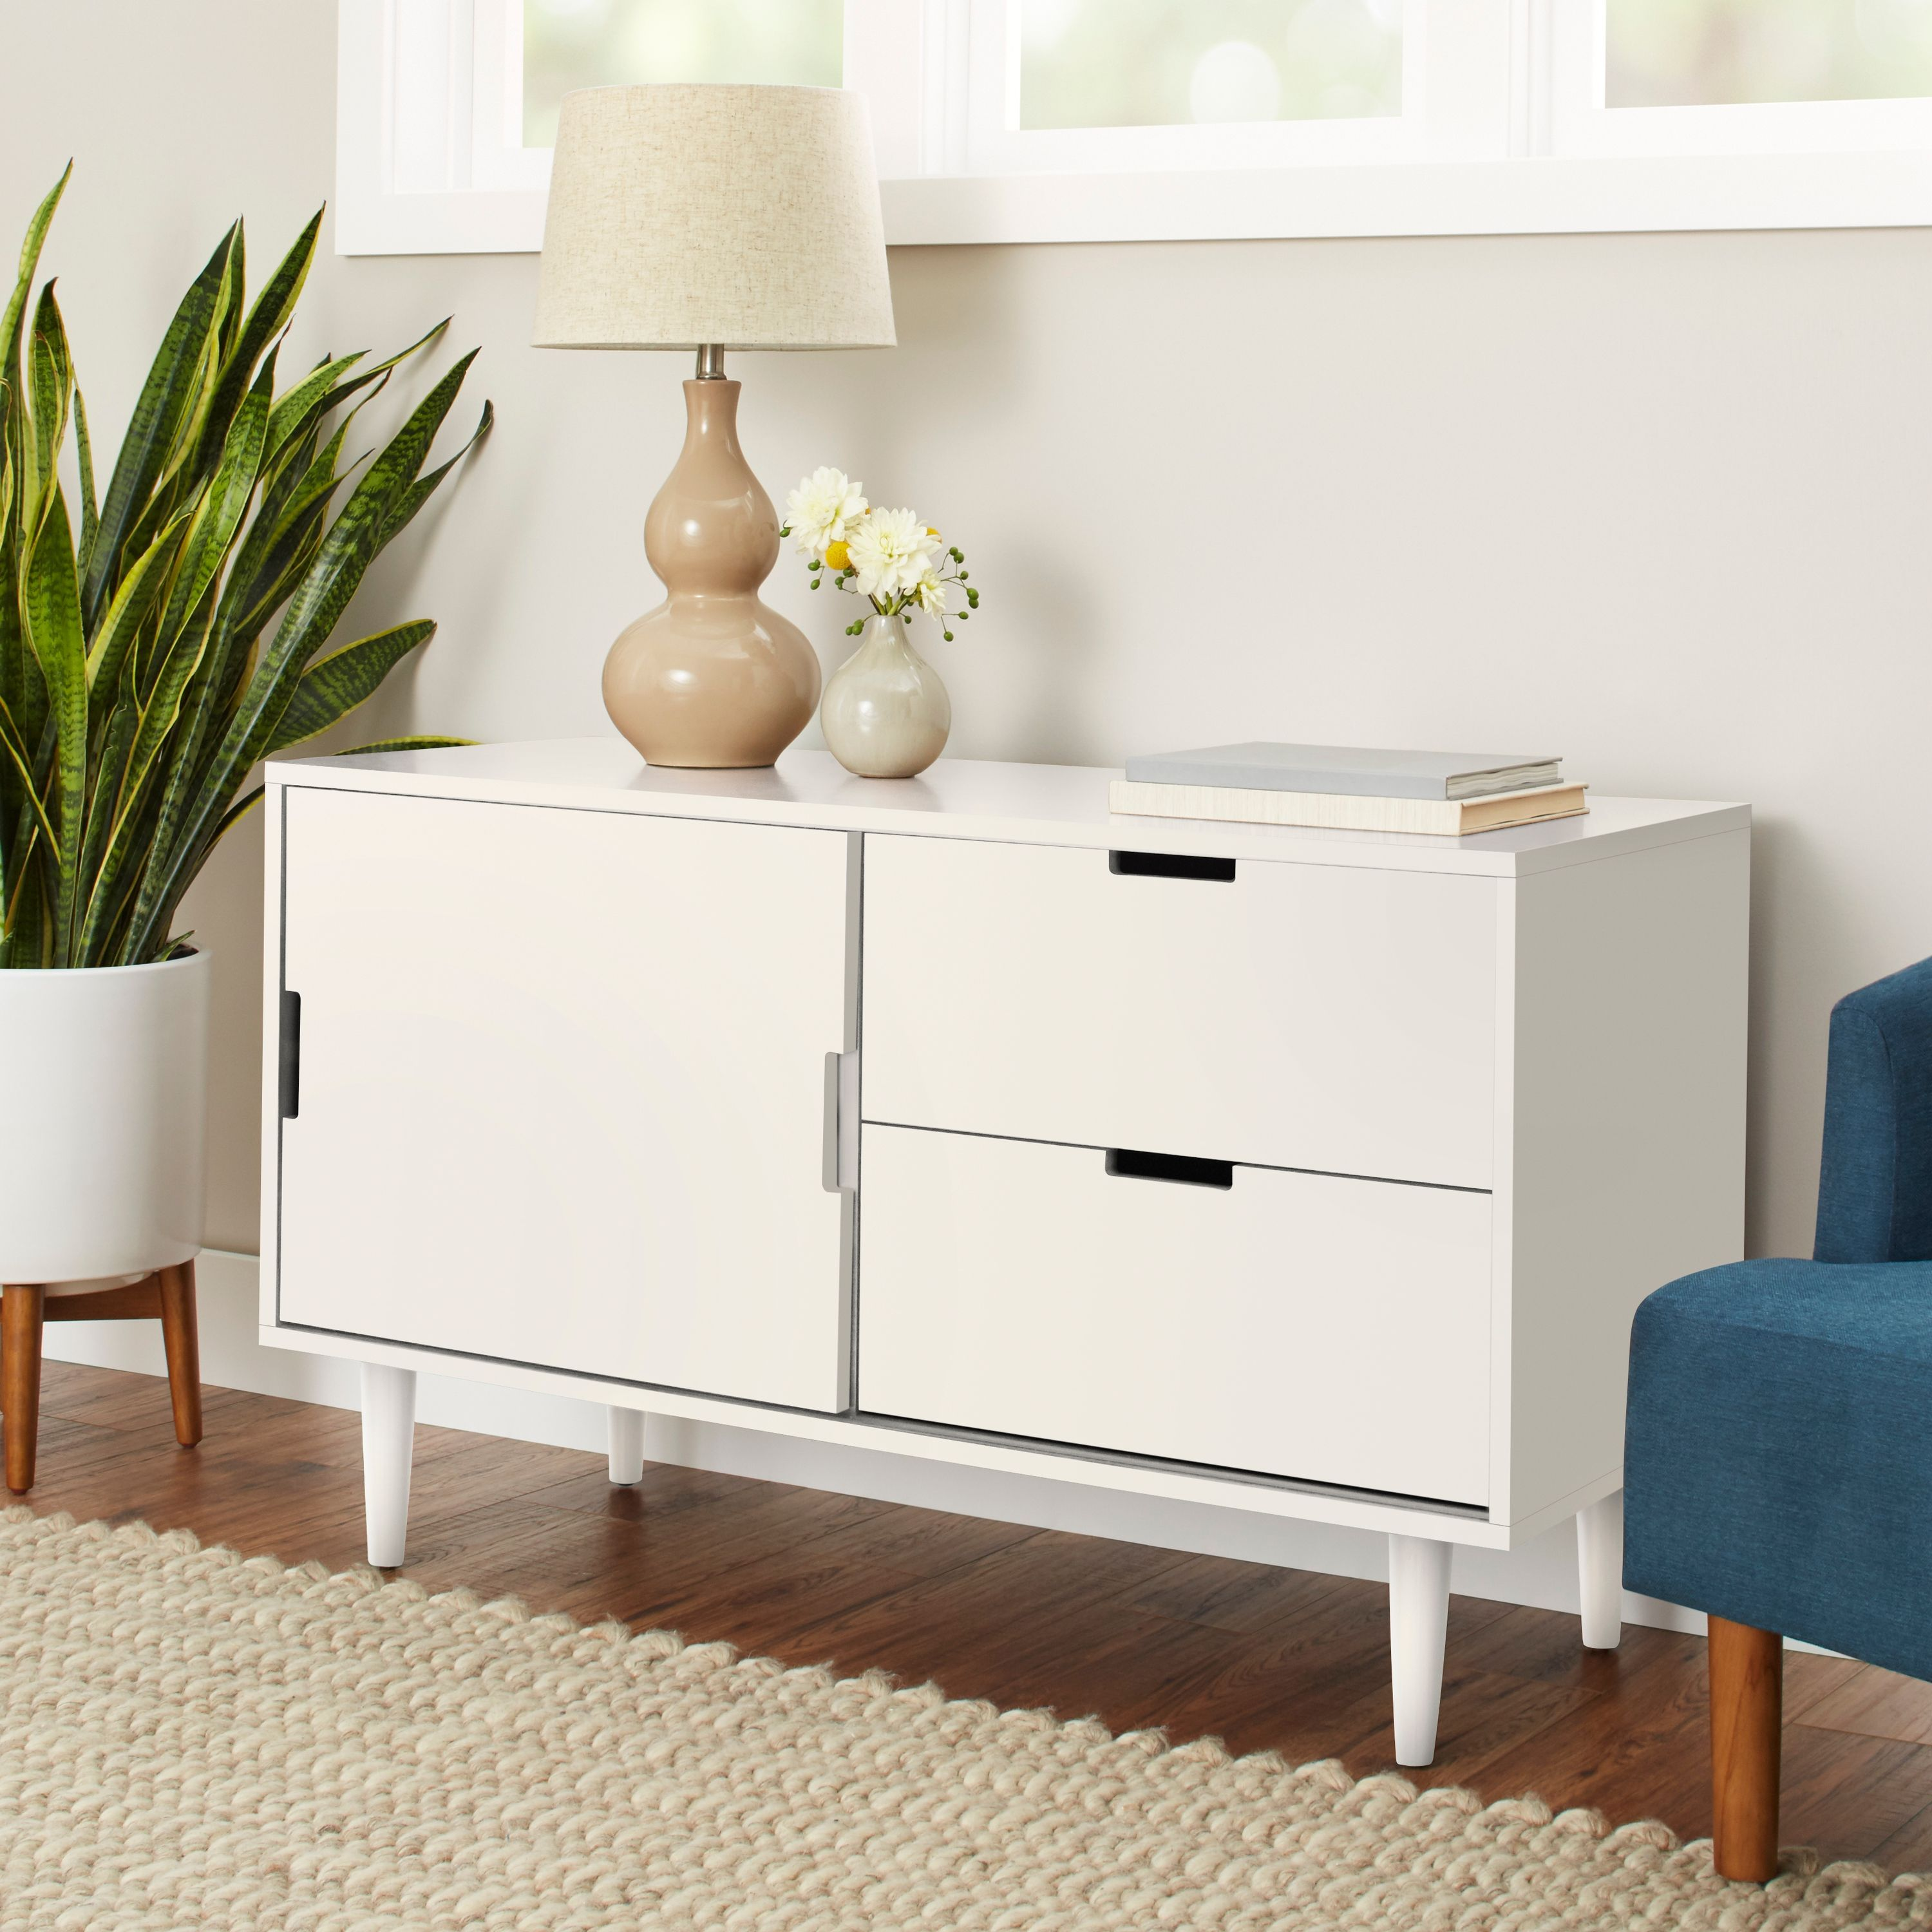 0044191a087fe6f3d99f053fdbc87cea - Better Homes And Gardens Flynn Credenza